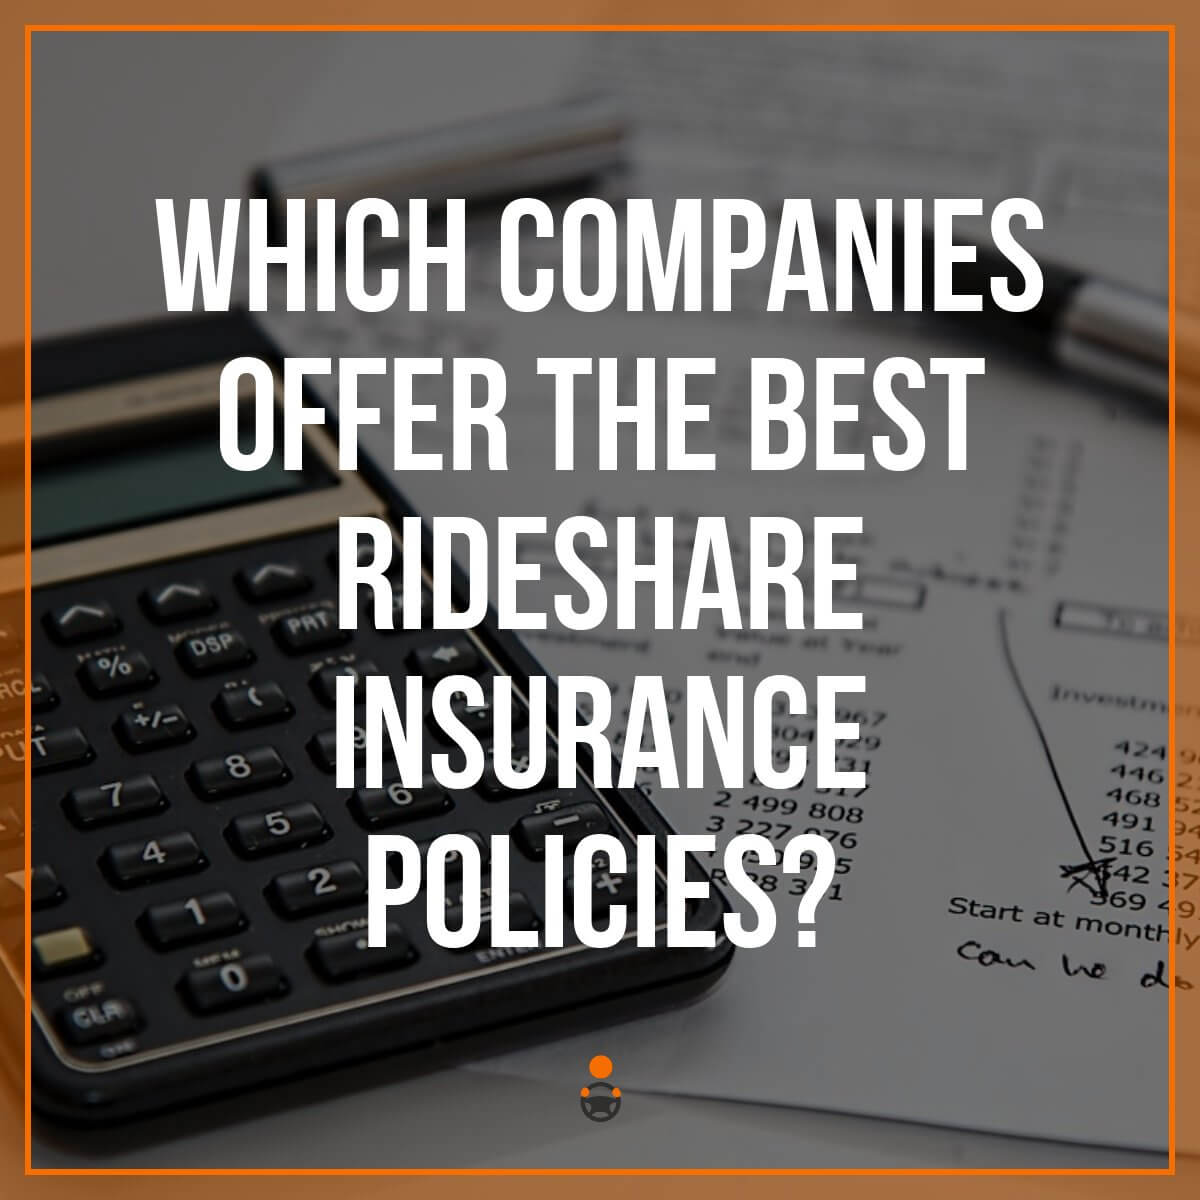 Uber Insurance – Which Company Offers The Best Policy?